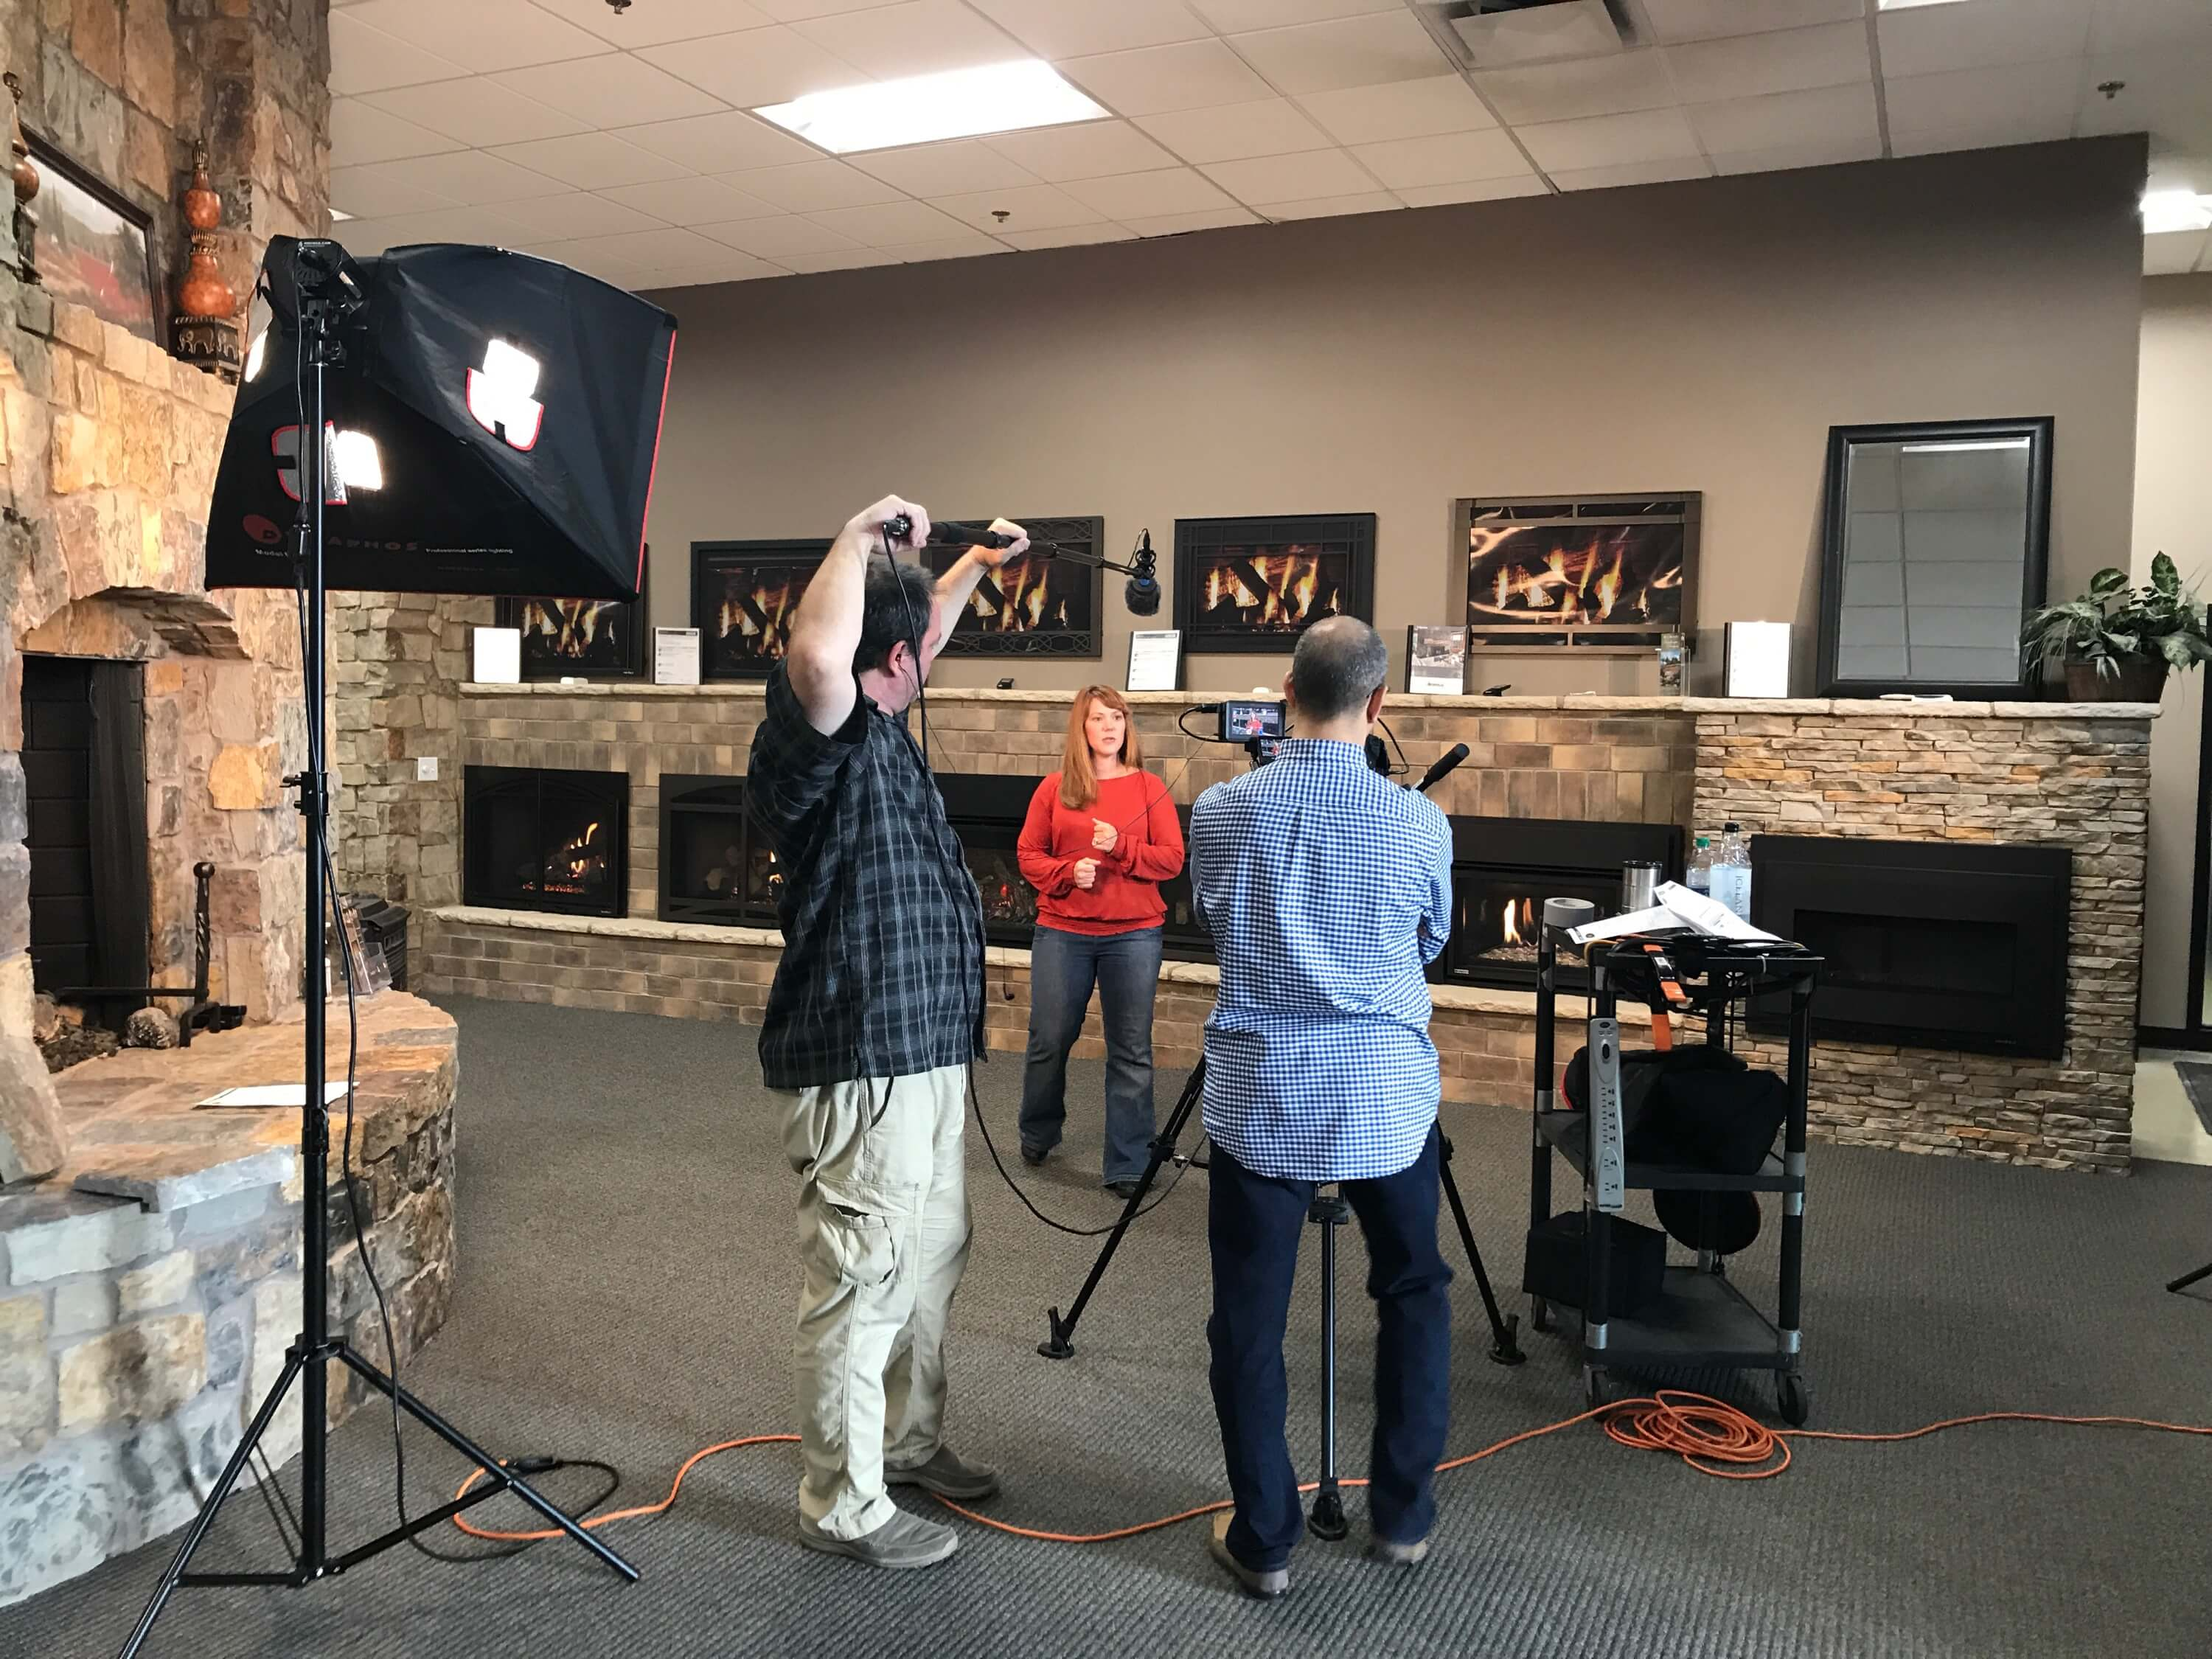 kansas city fireplace commercial filming